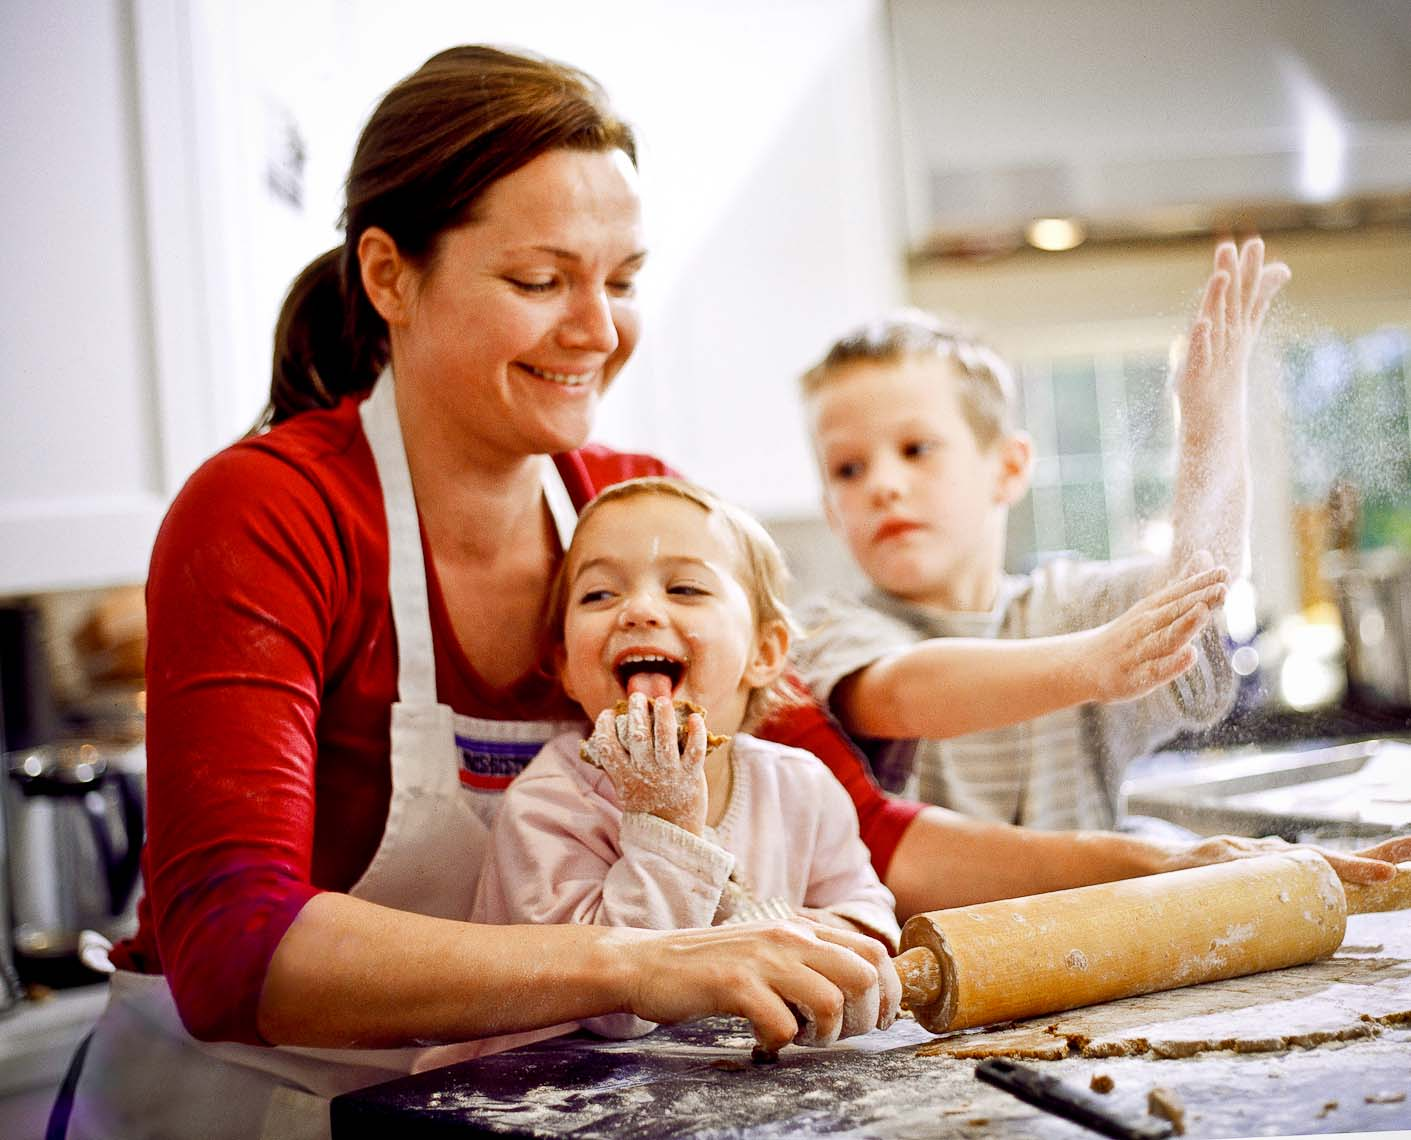 Mom-kids_kitchen2-DUP.jpg